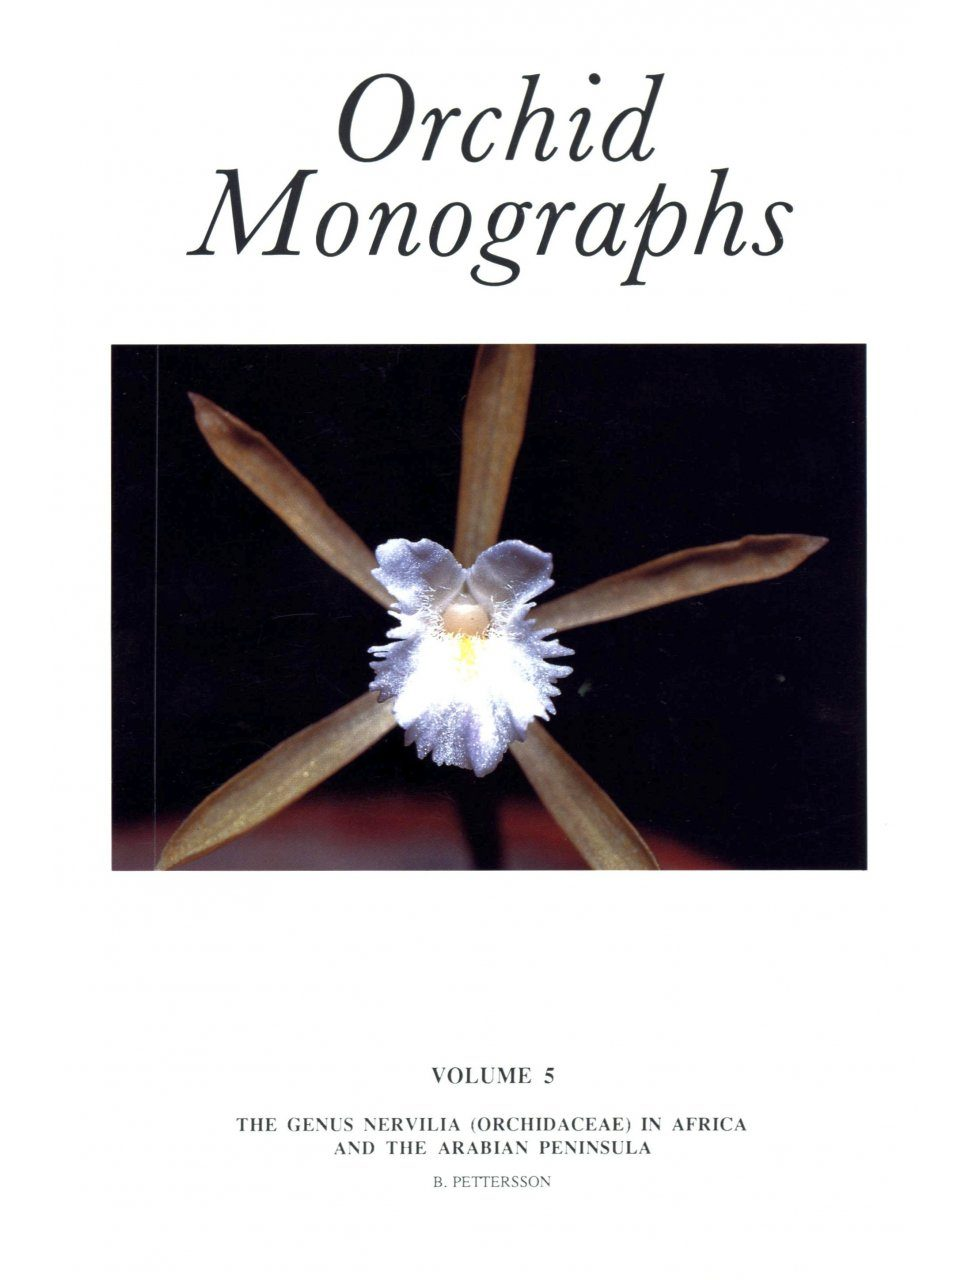 Orchid Monographs, Volume 5